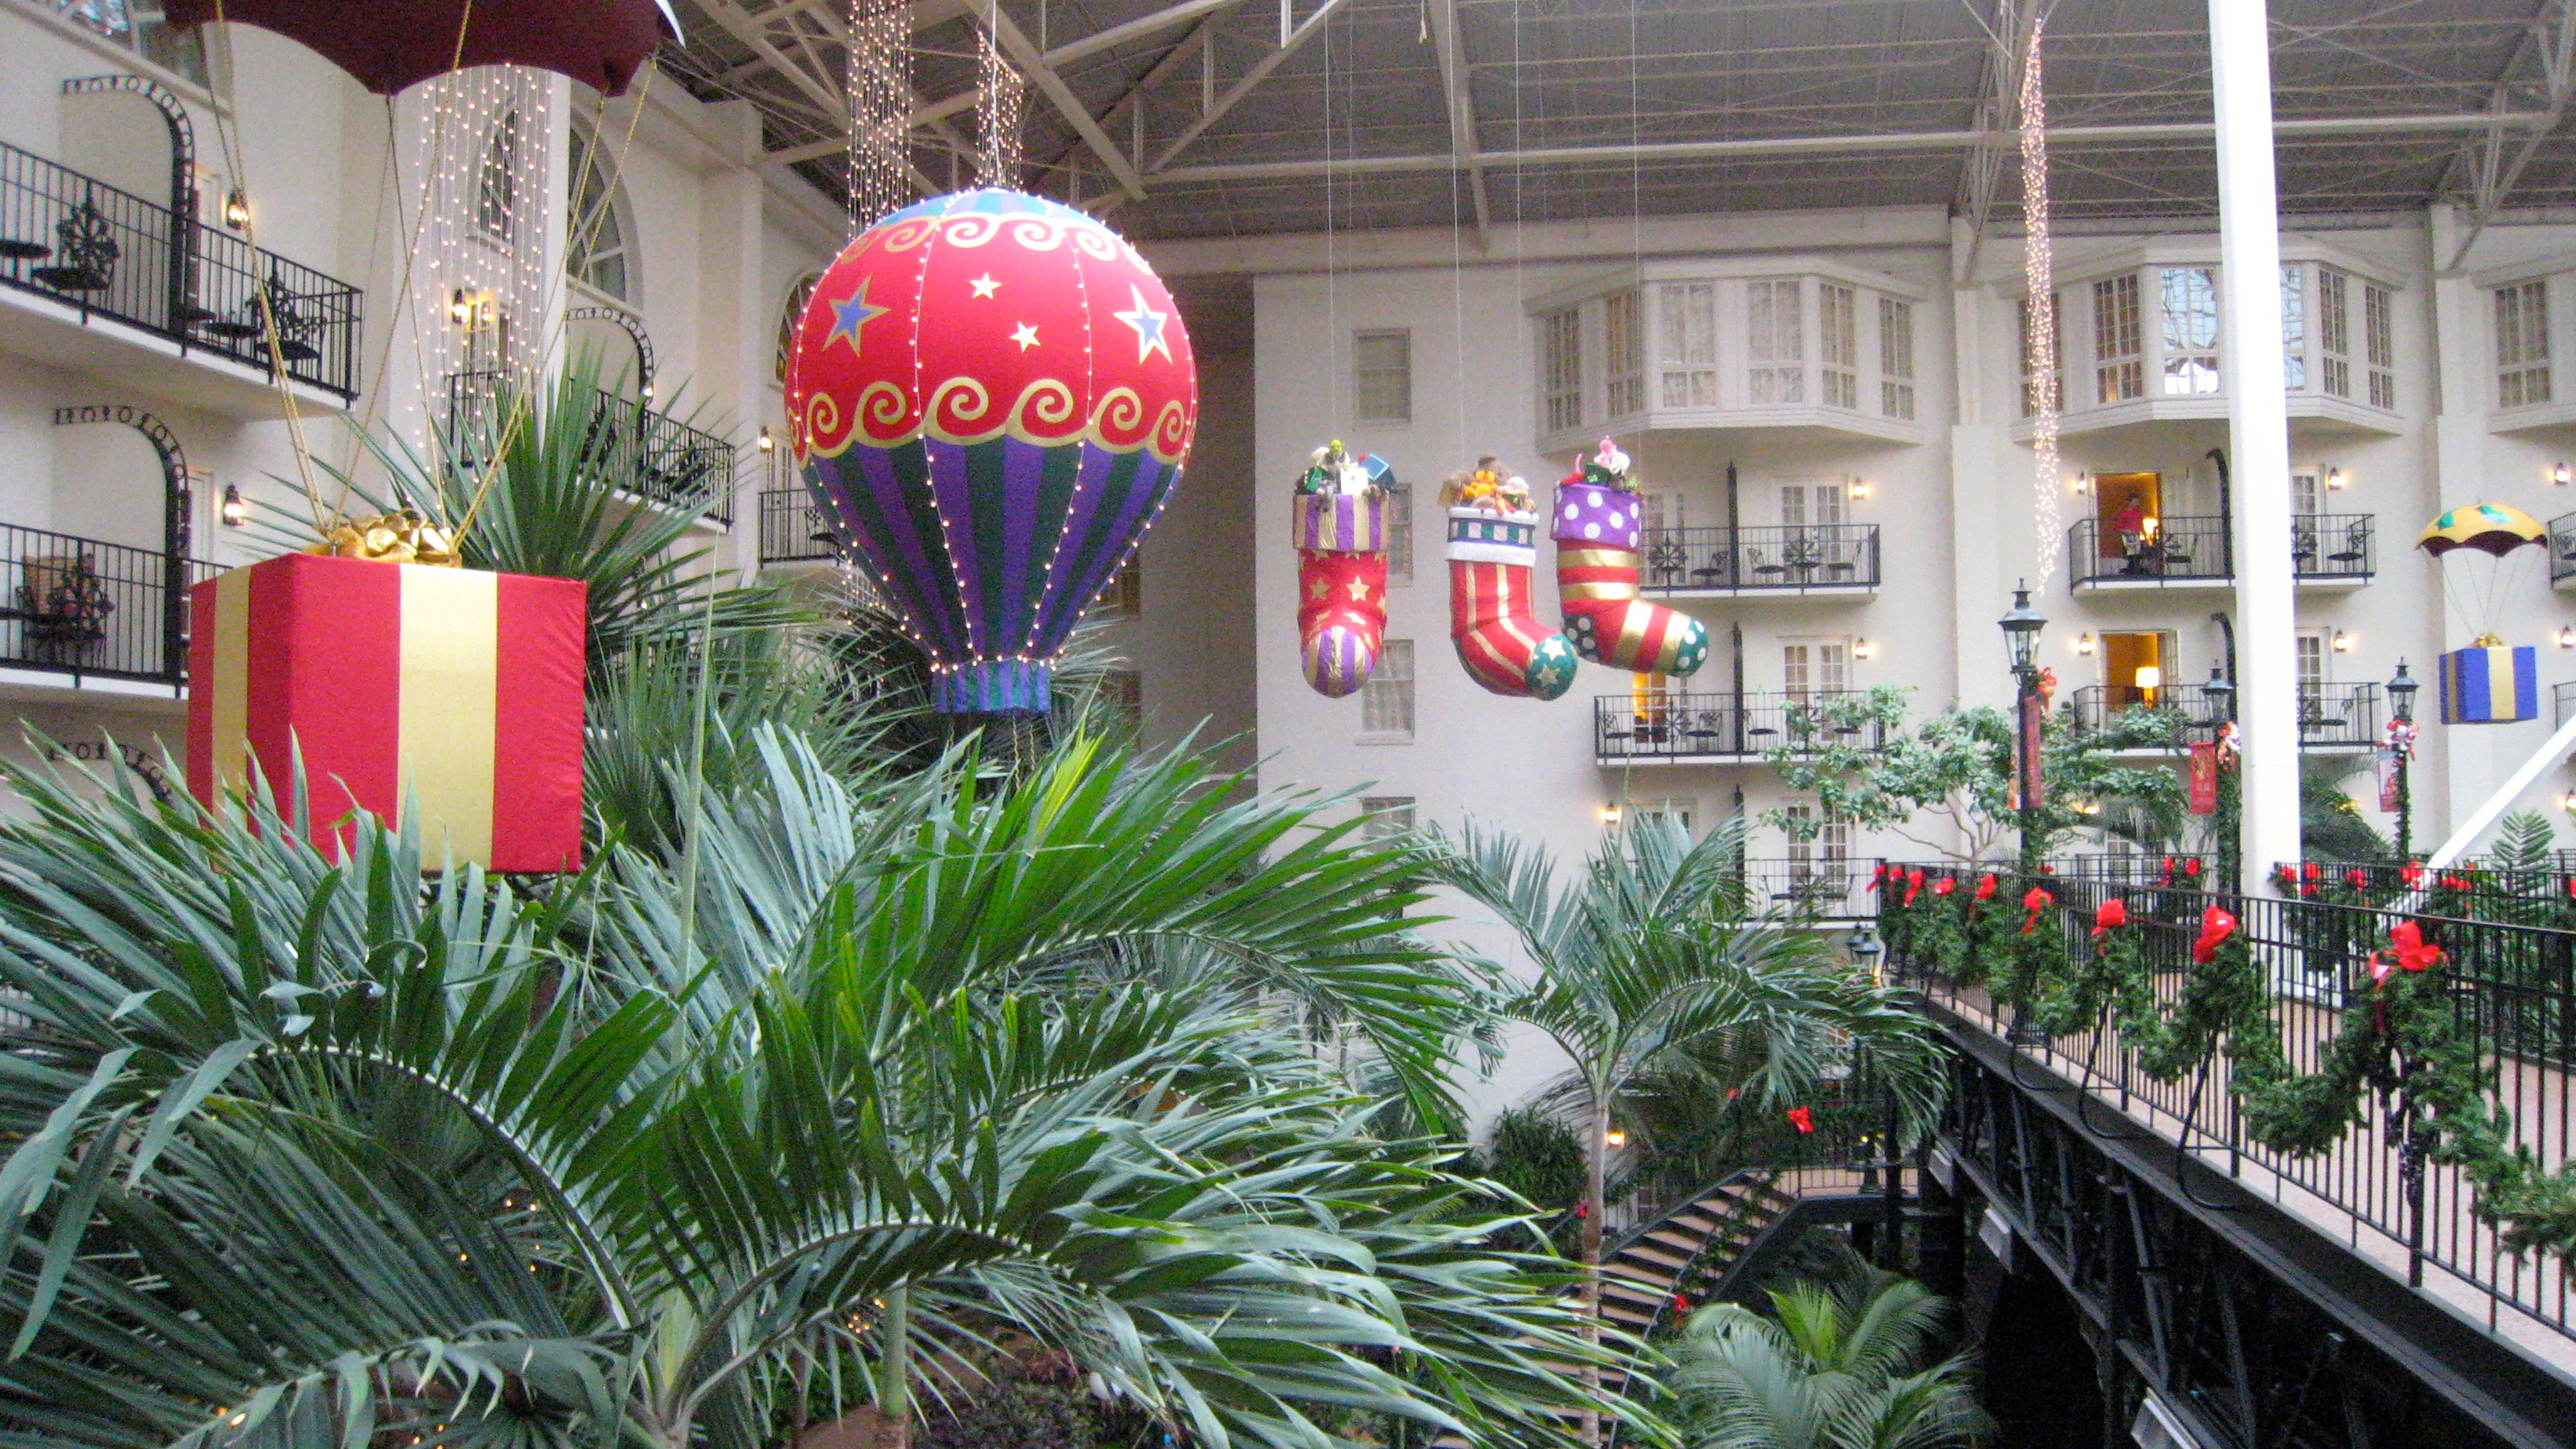 Daytime Christmas scenery at the Opryland (Photo credit: MCArnott)